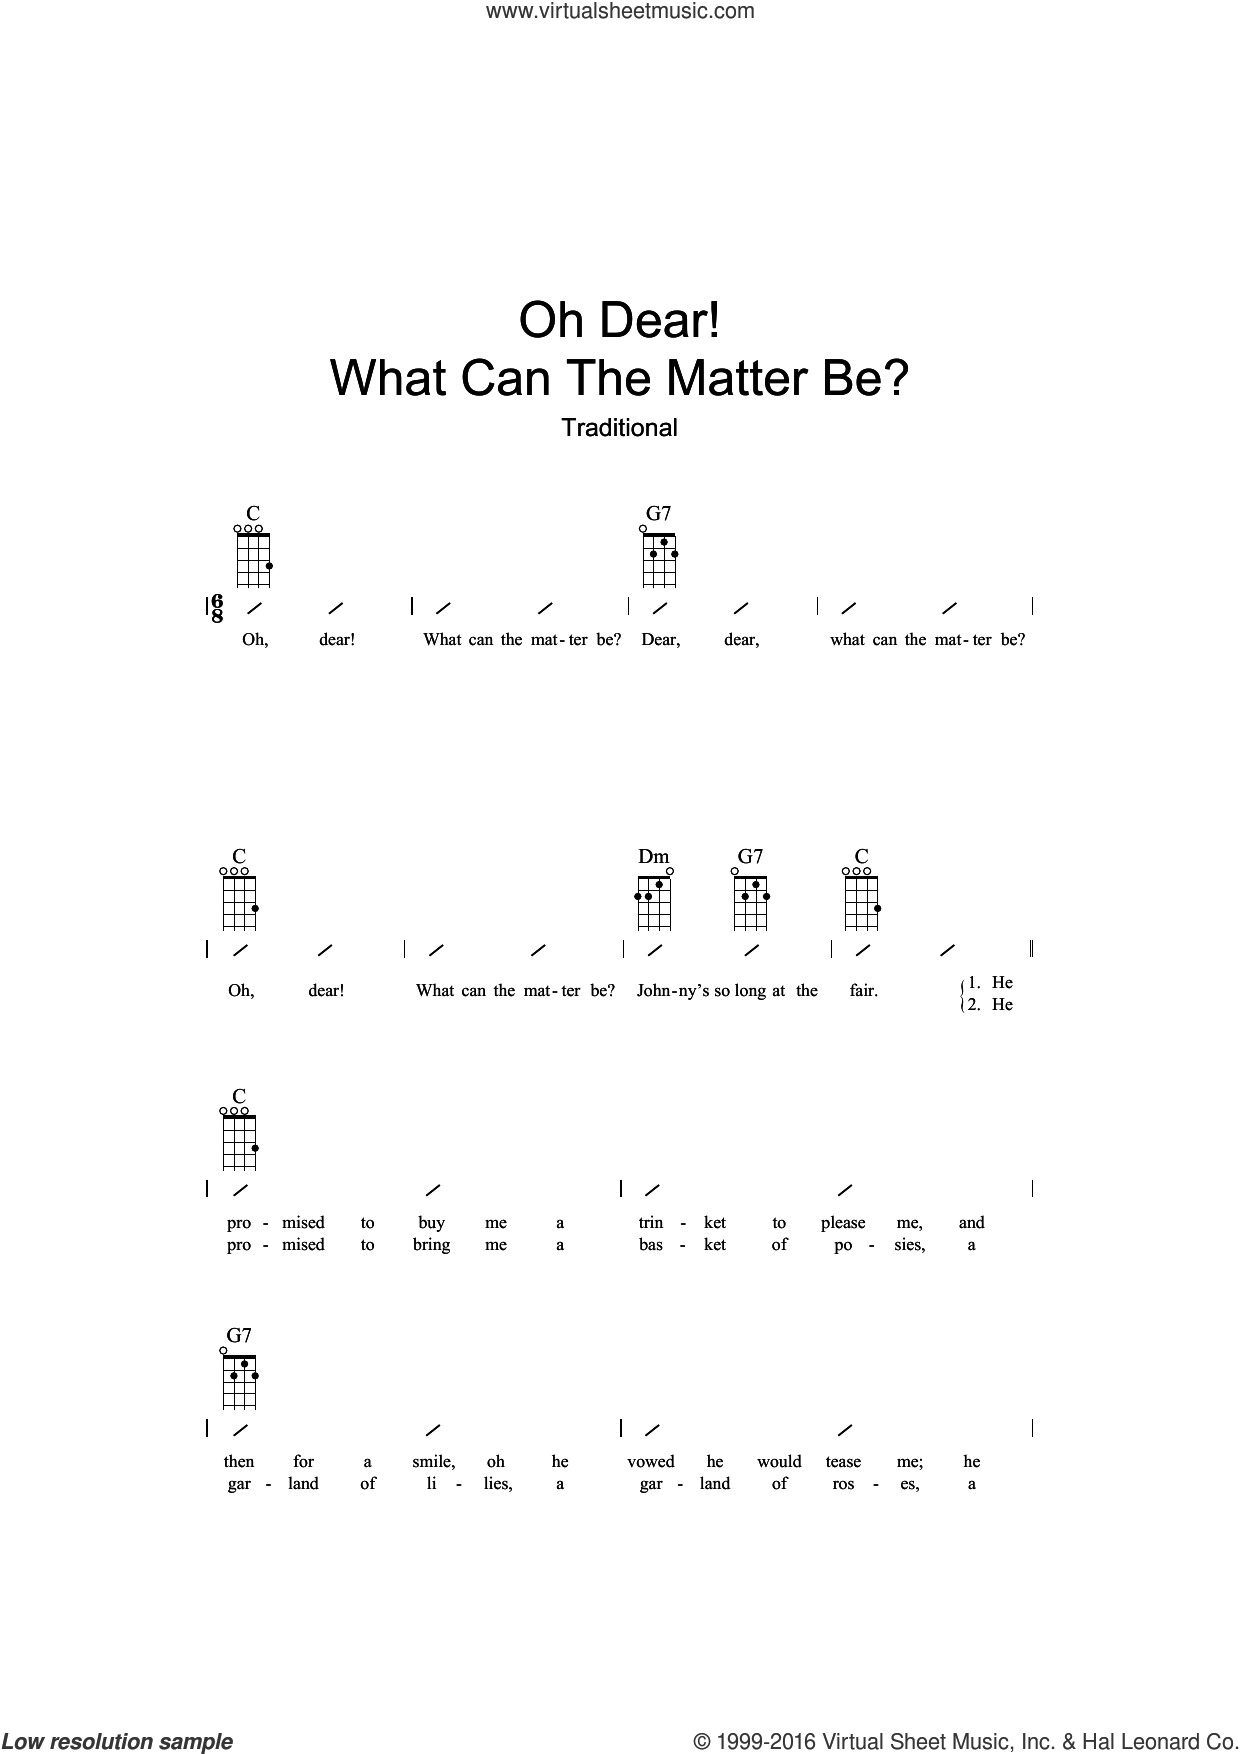 Oh Dear What Can The Matter Be? sheet music for ukulele (chords), intermediate skill level